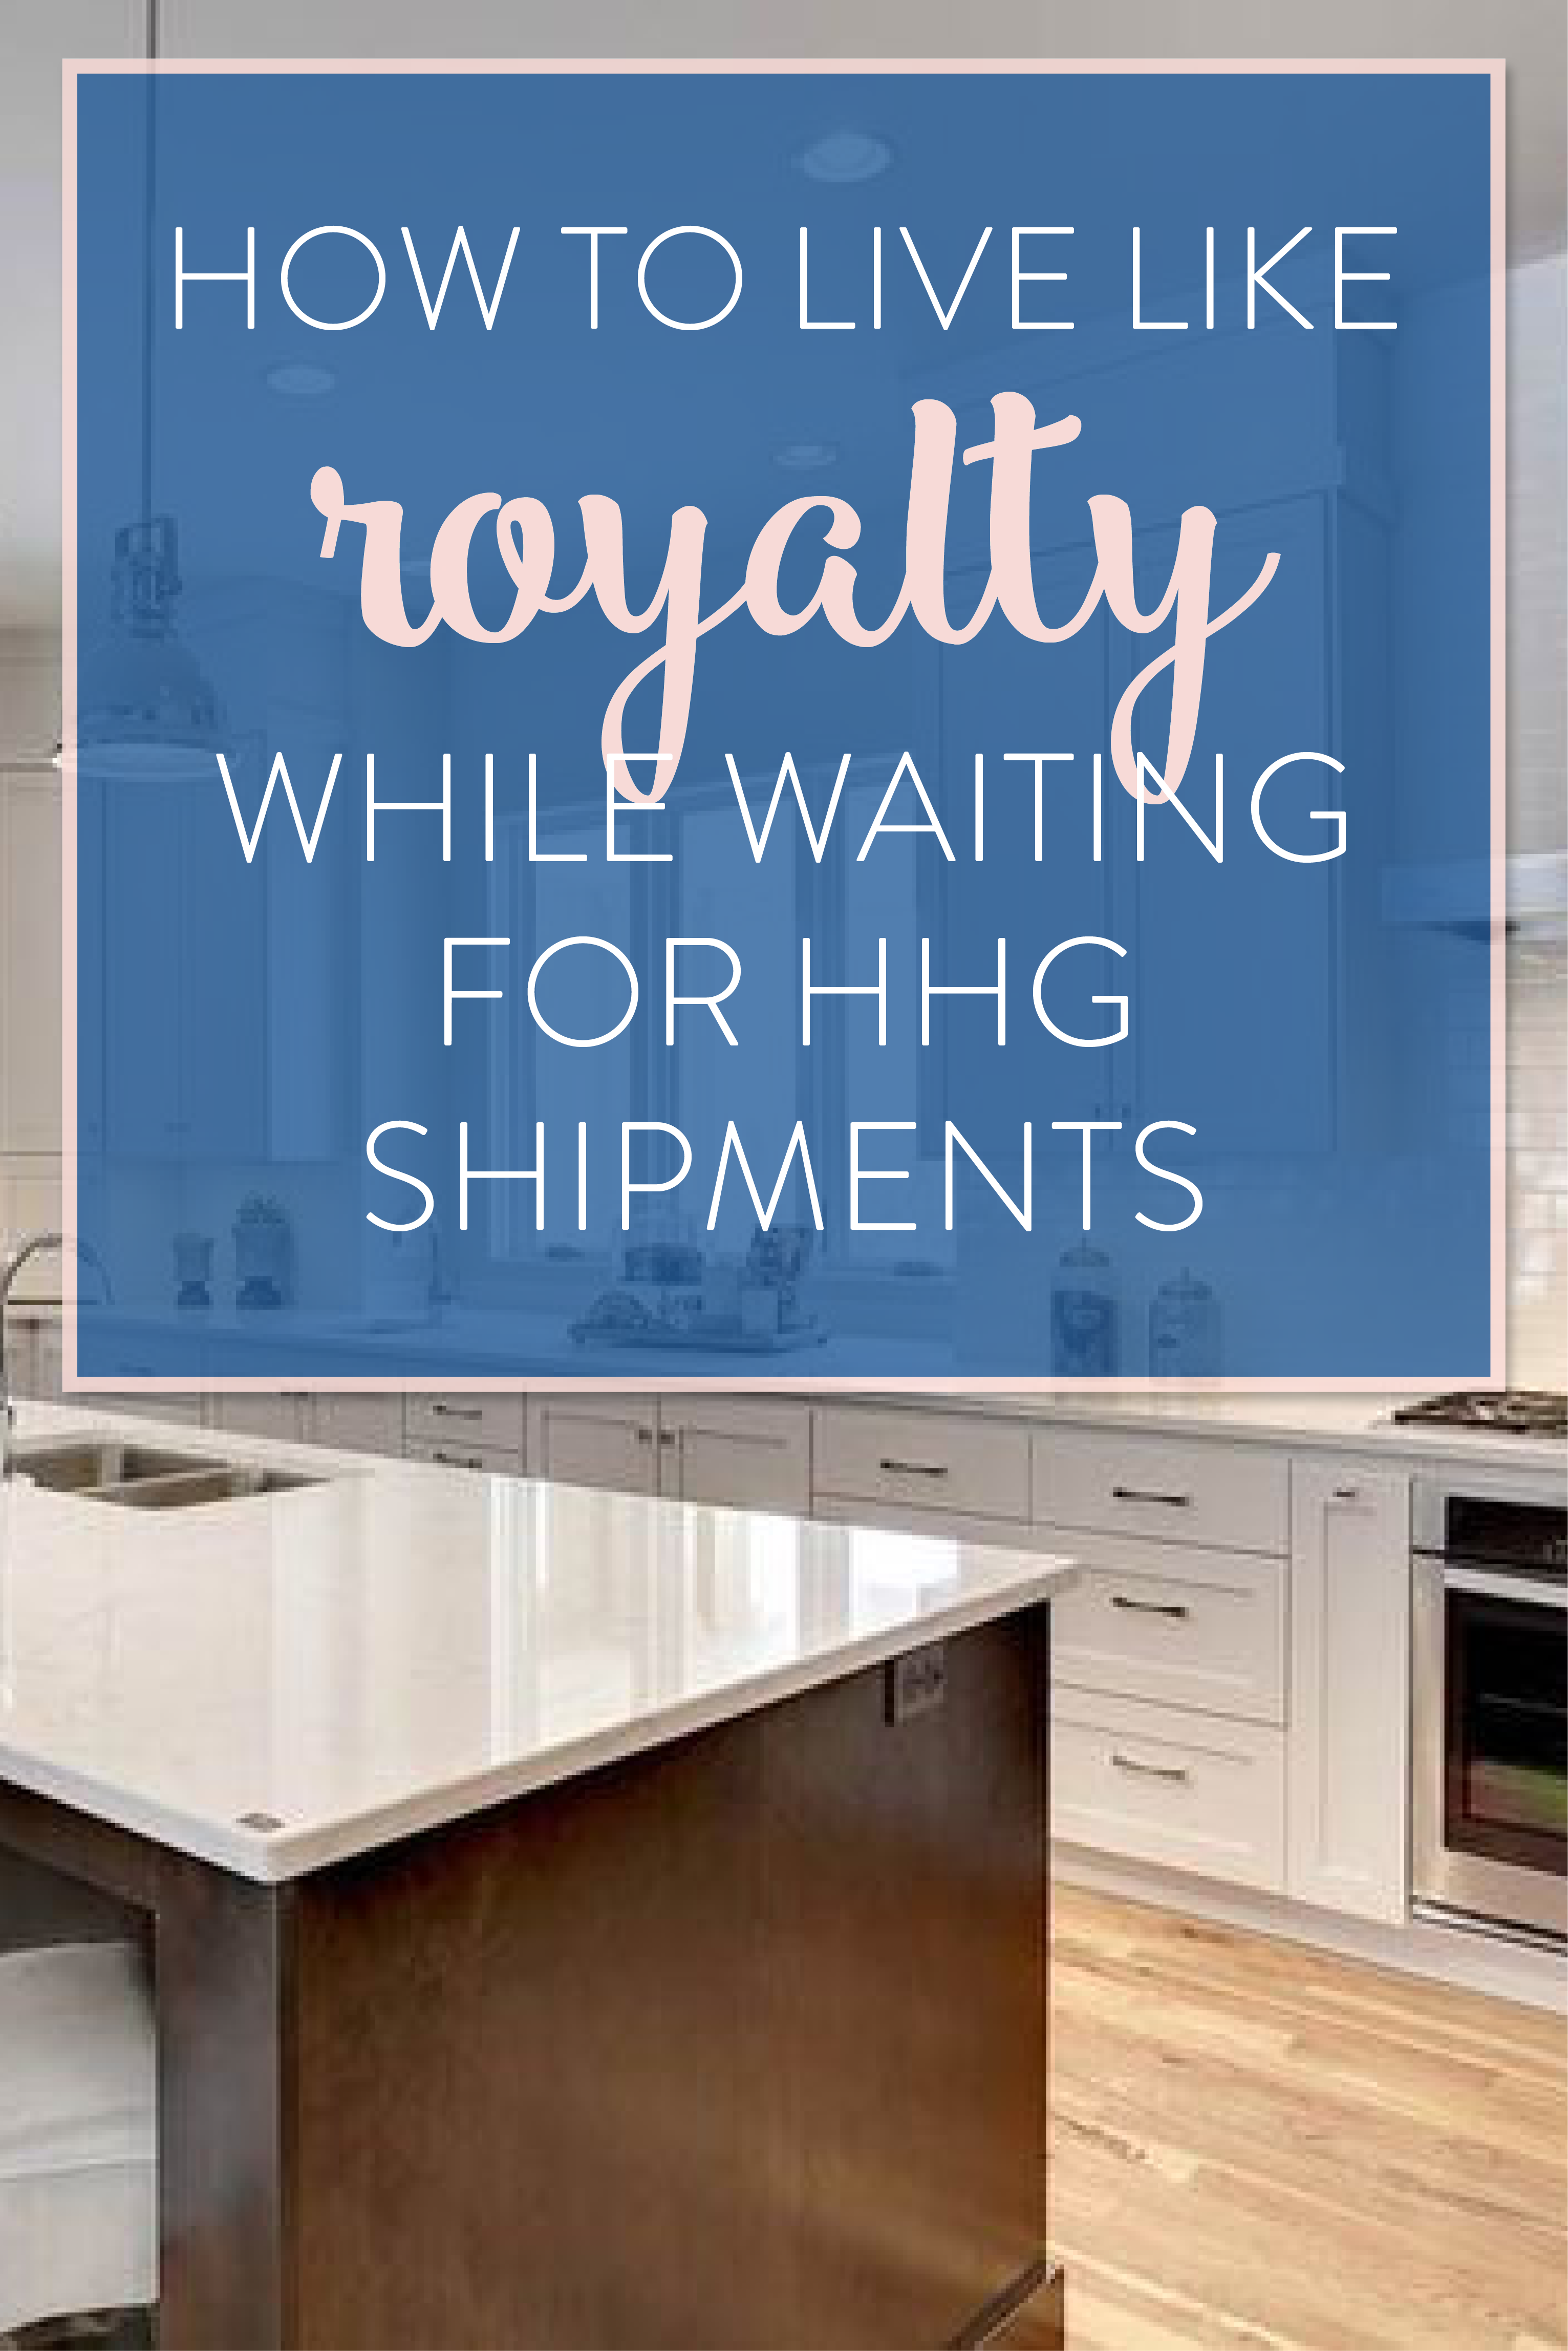 How to Live Like Royalty While Waiting for HHG Shipments